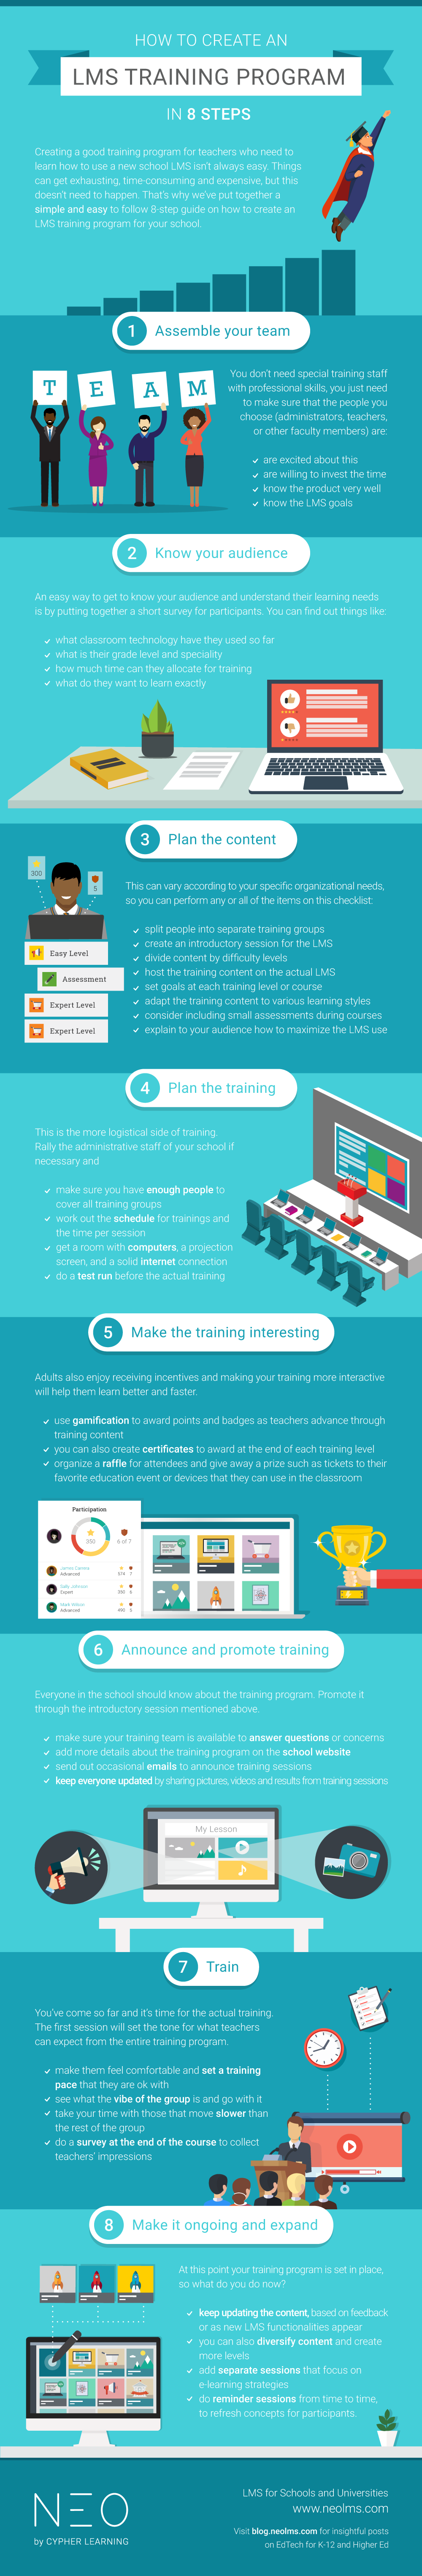 How to Create an LMS Training Program in 8 Steps